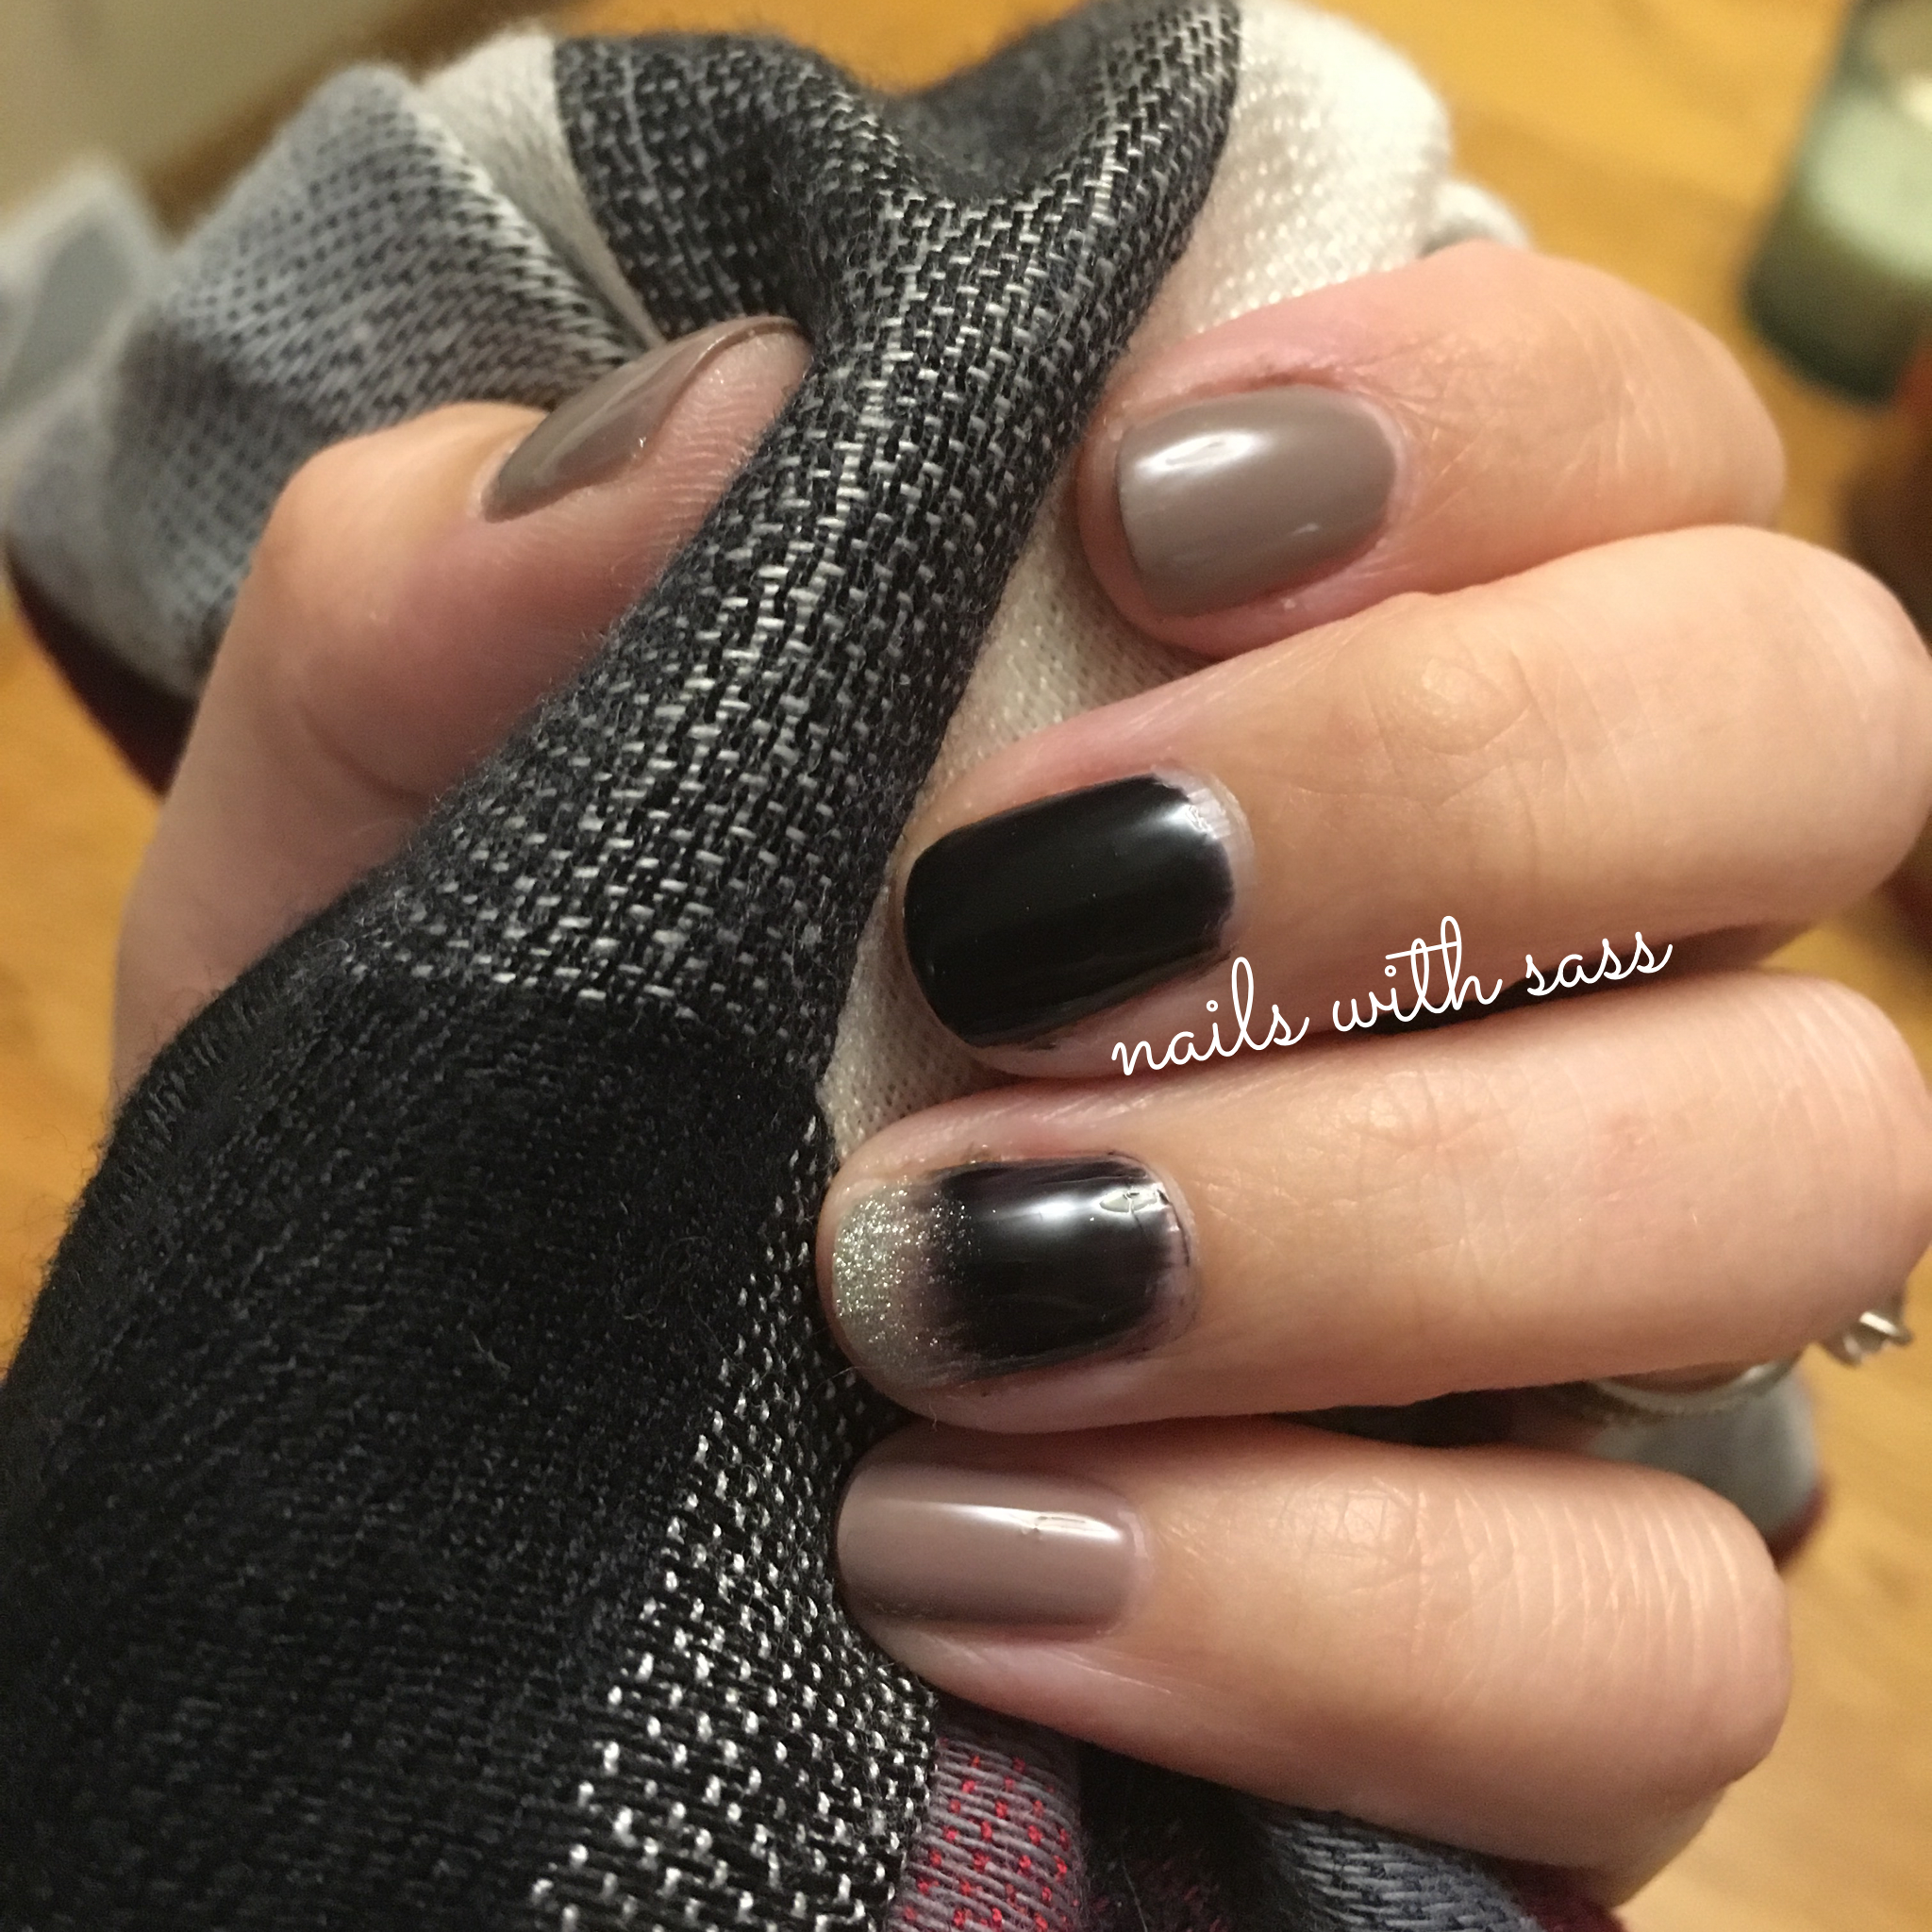 Loving This Neutral Ombre Nail Art Using Gelmoment Ravens Kiss Echoes Of Paris And Chandelier Nail Art Ombre Nails Ombre Nails